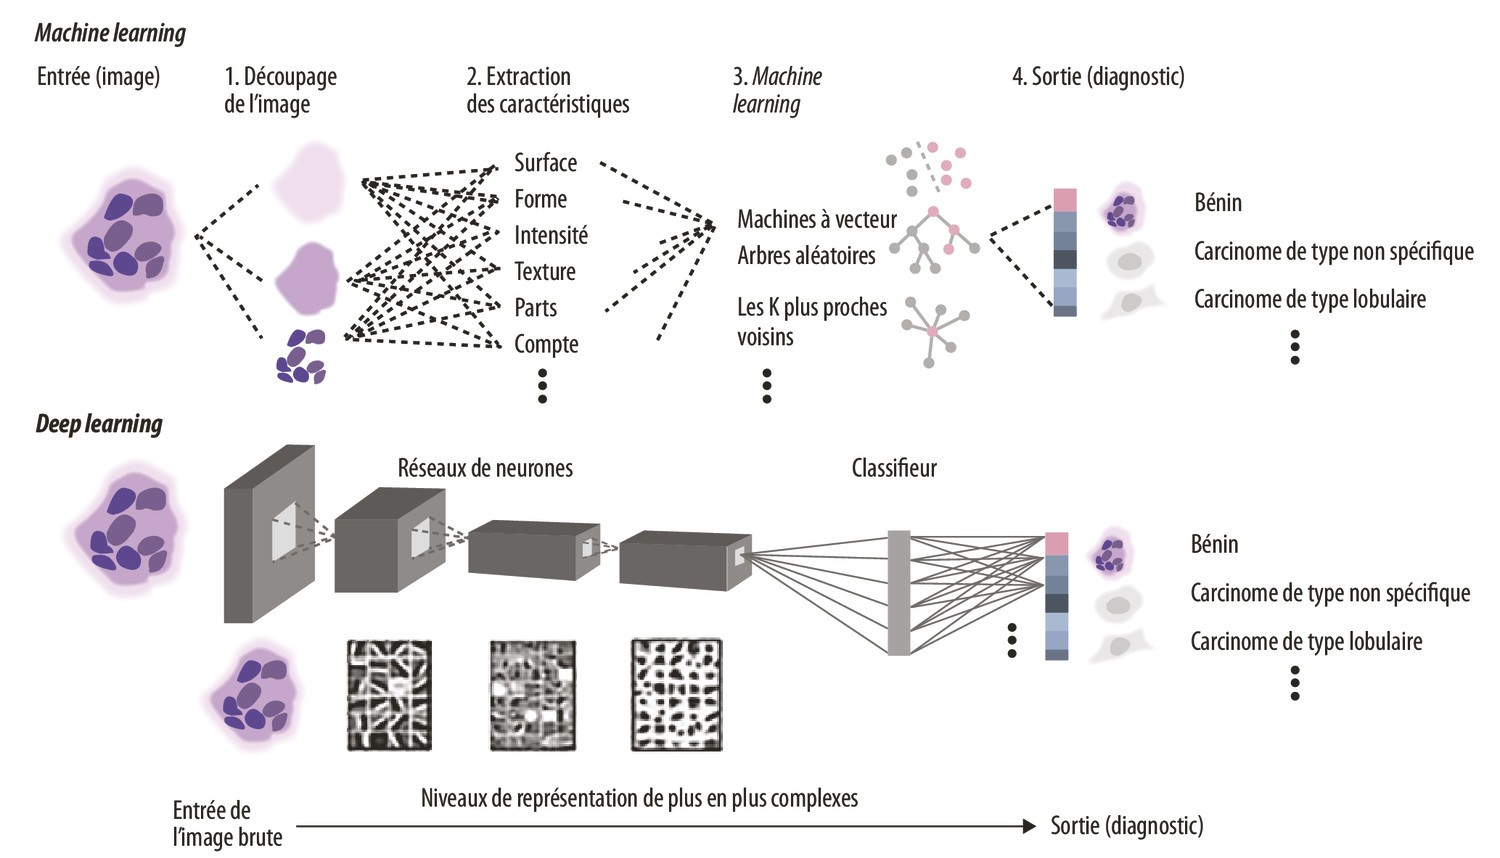 La pathologie à l'heure de l'intelligence artificielle : exemple de la pathologie mammaire - Figure 1